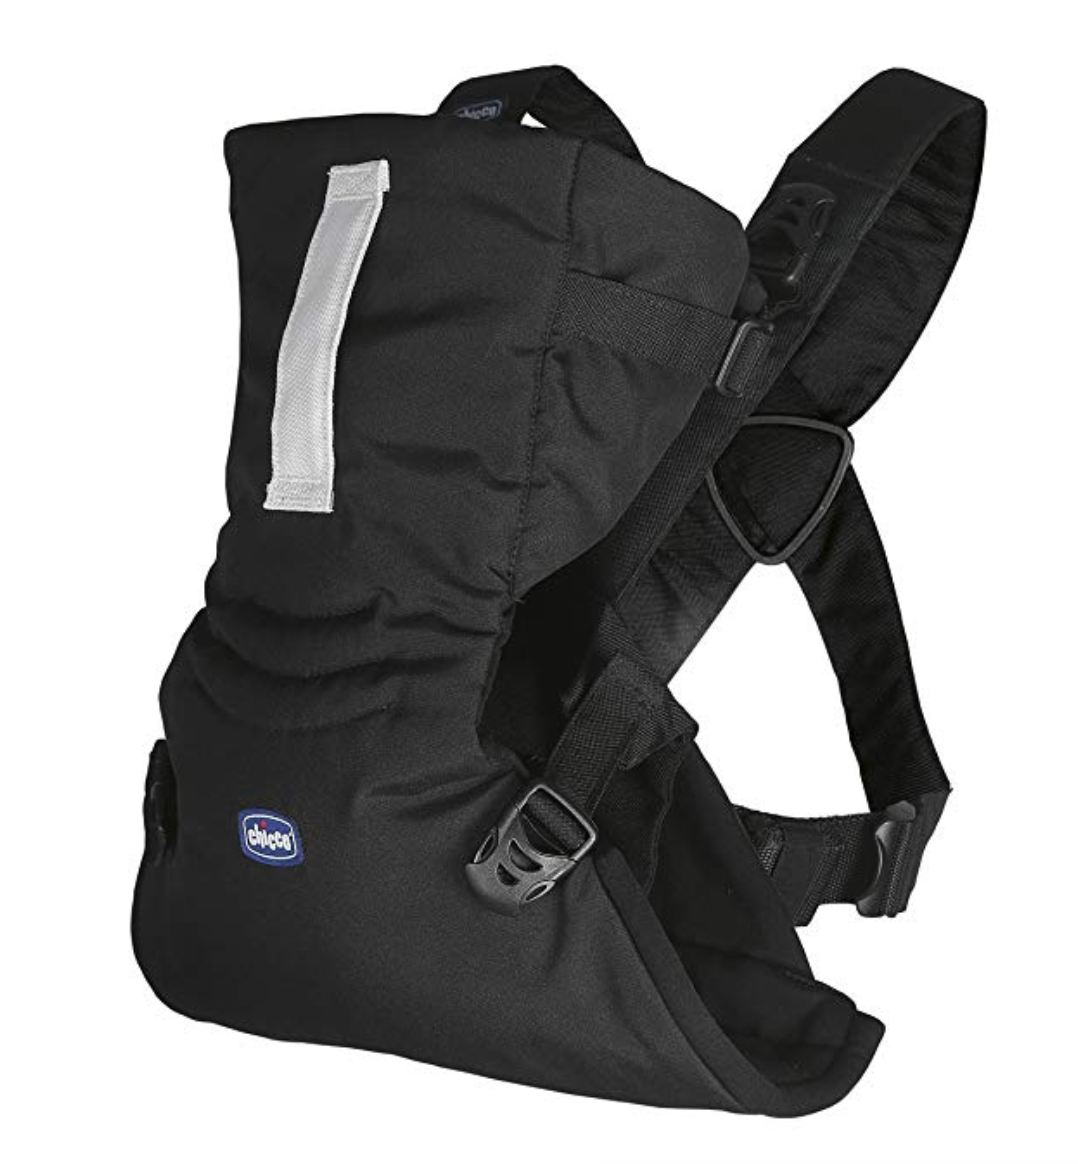 Chicco EasyFit Baby Carrier - 5 Best Baby Carriers To Keep Baby Secure